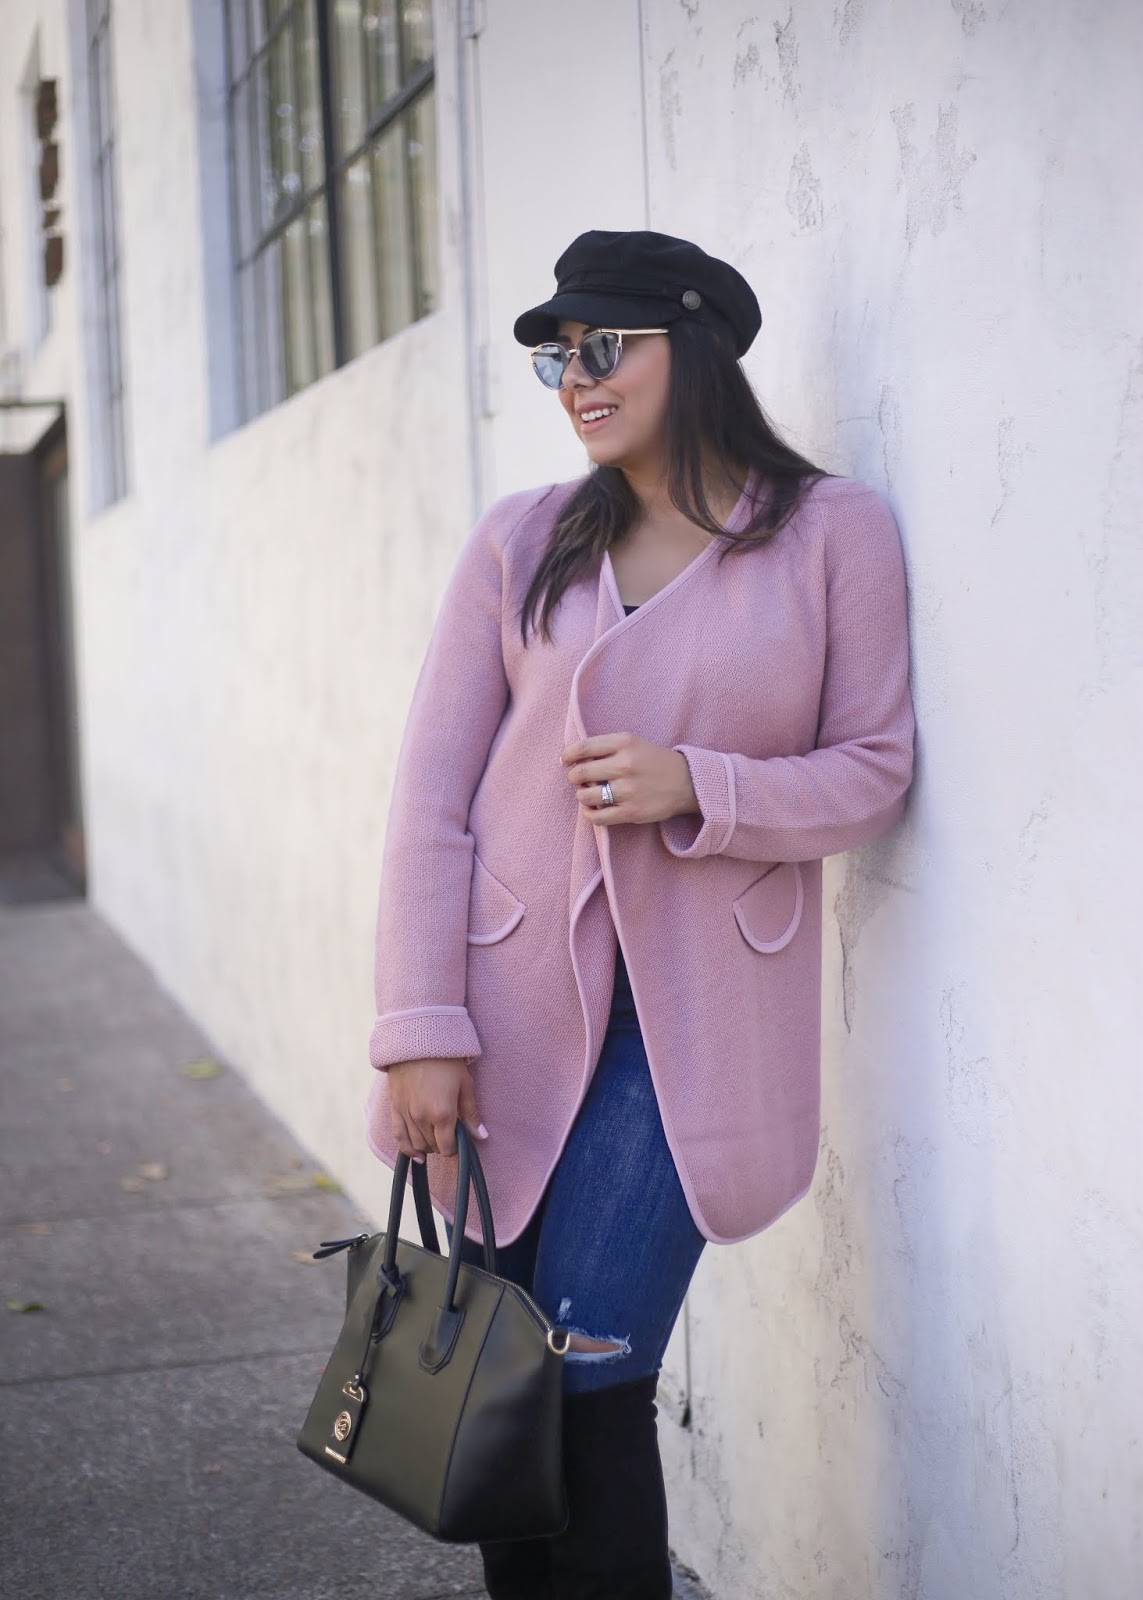 latina fashion blogger in san diego, san diego fashion blogger 2018